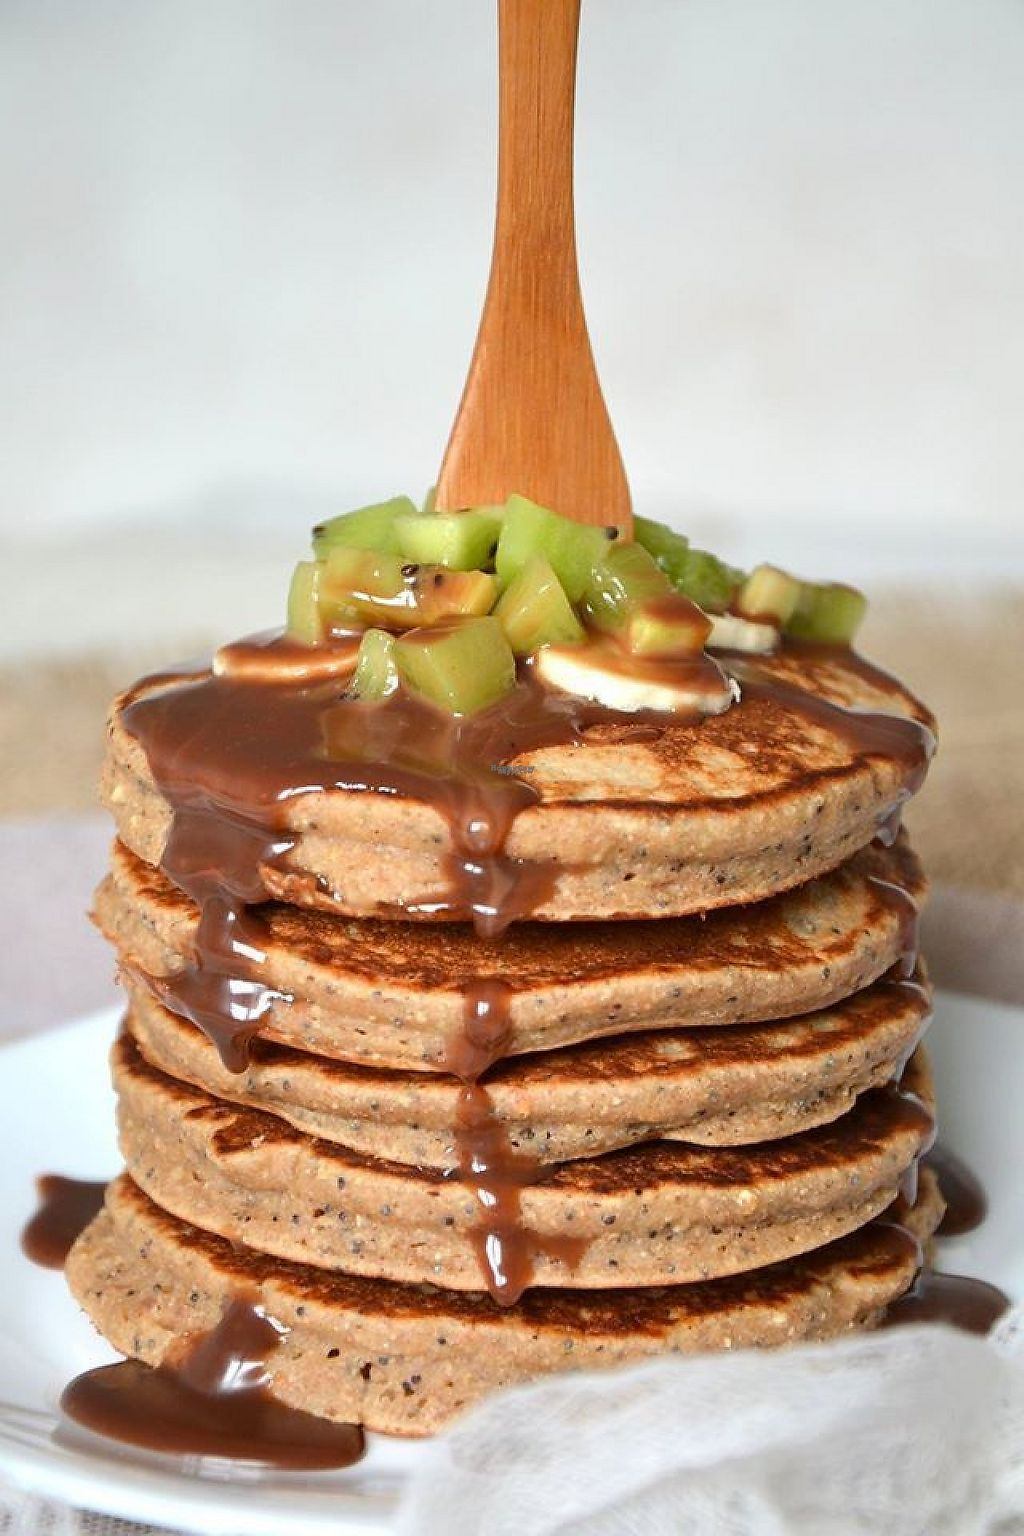 """Photo of La Vie Claire  by <a href=""""/members/profile/community"""">community</a> <br/>vegan pancakes  <br/> February 4, 2017  - <a href='/contact/abuse/image/72023/221875'>Report</a>"""